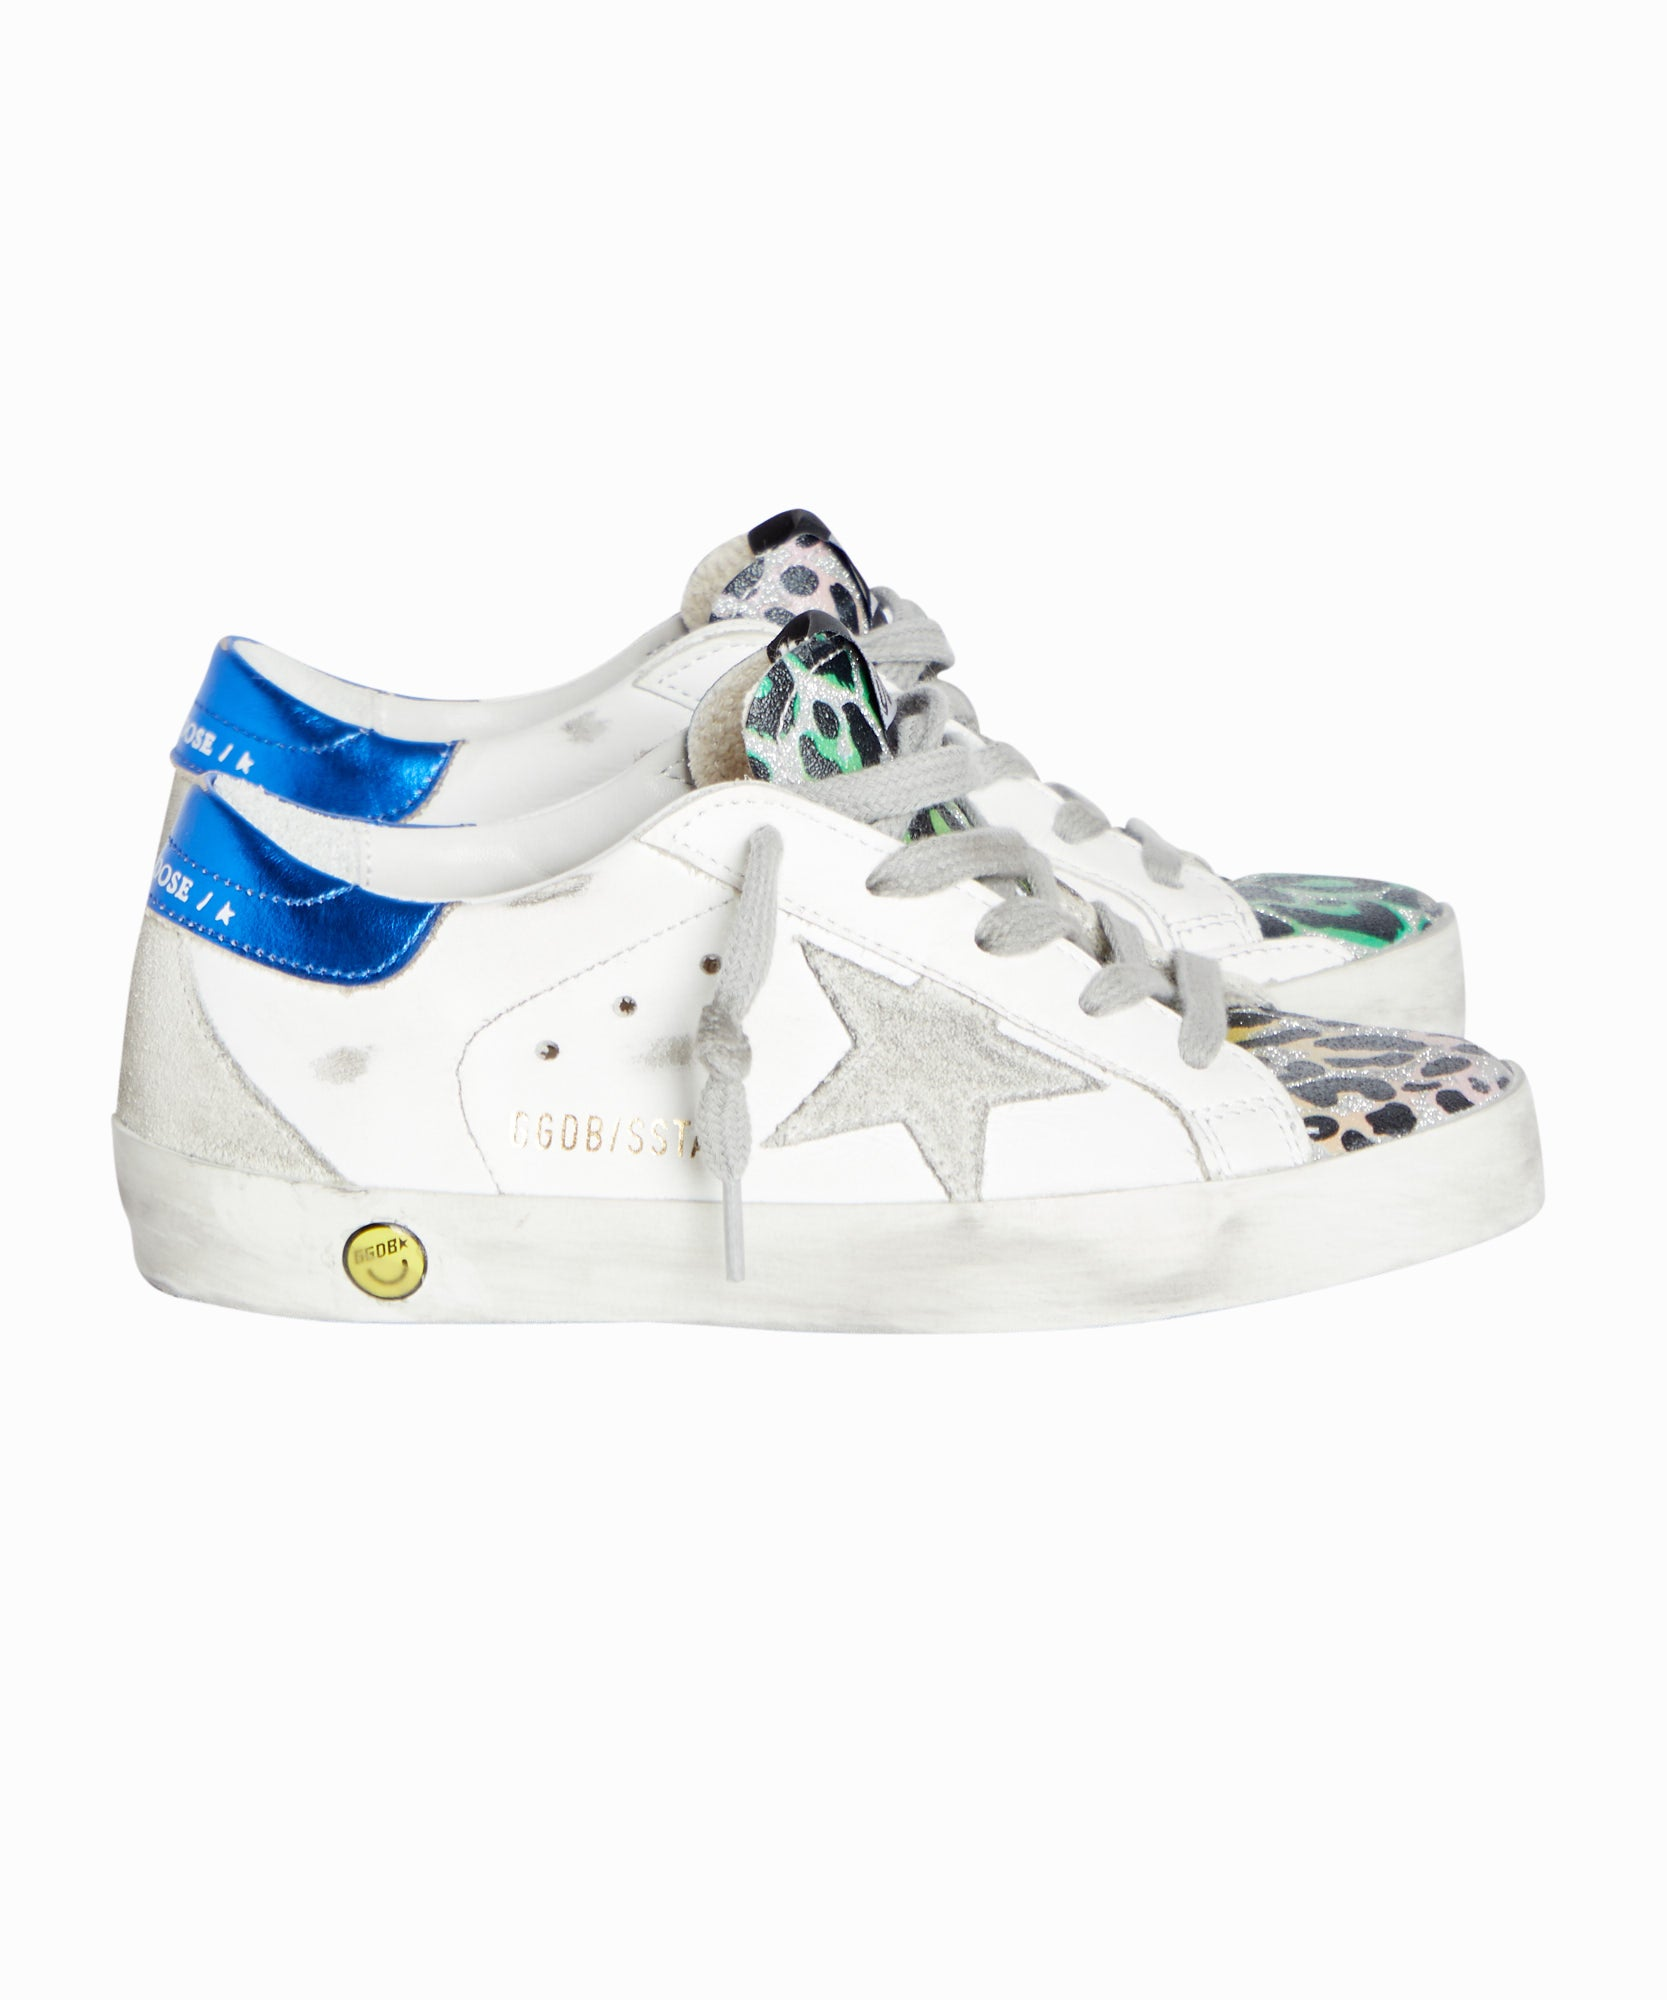 Superstars Sneakers